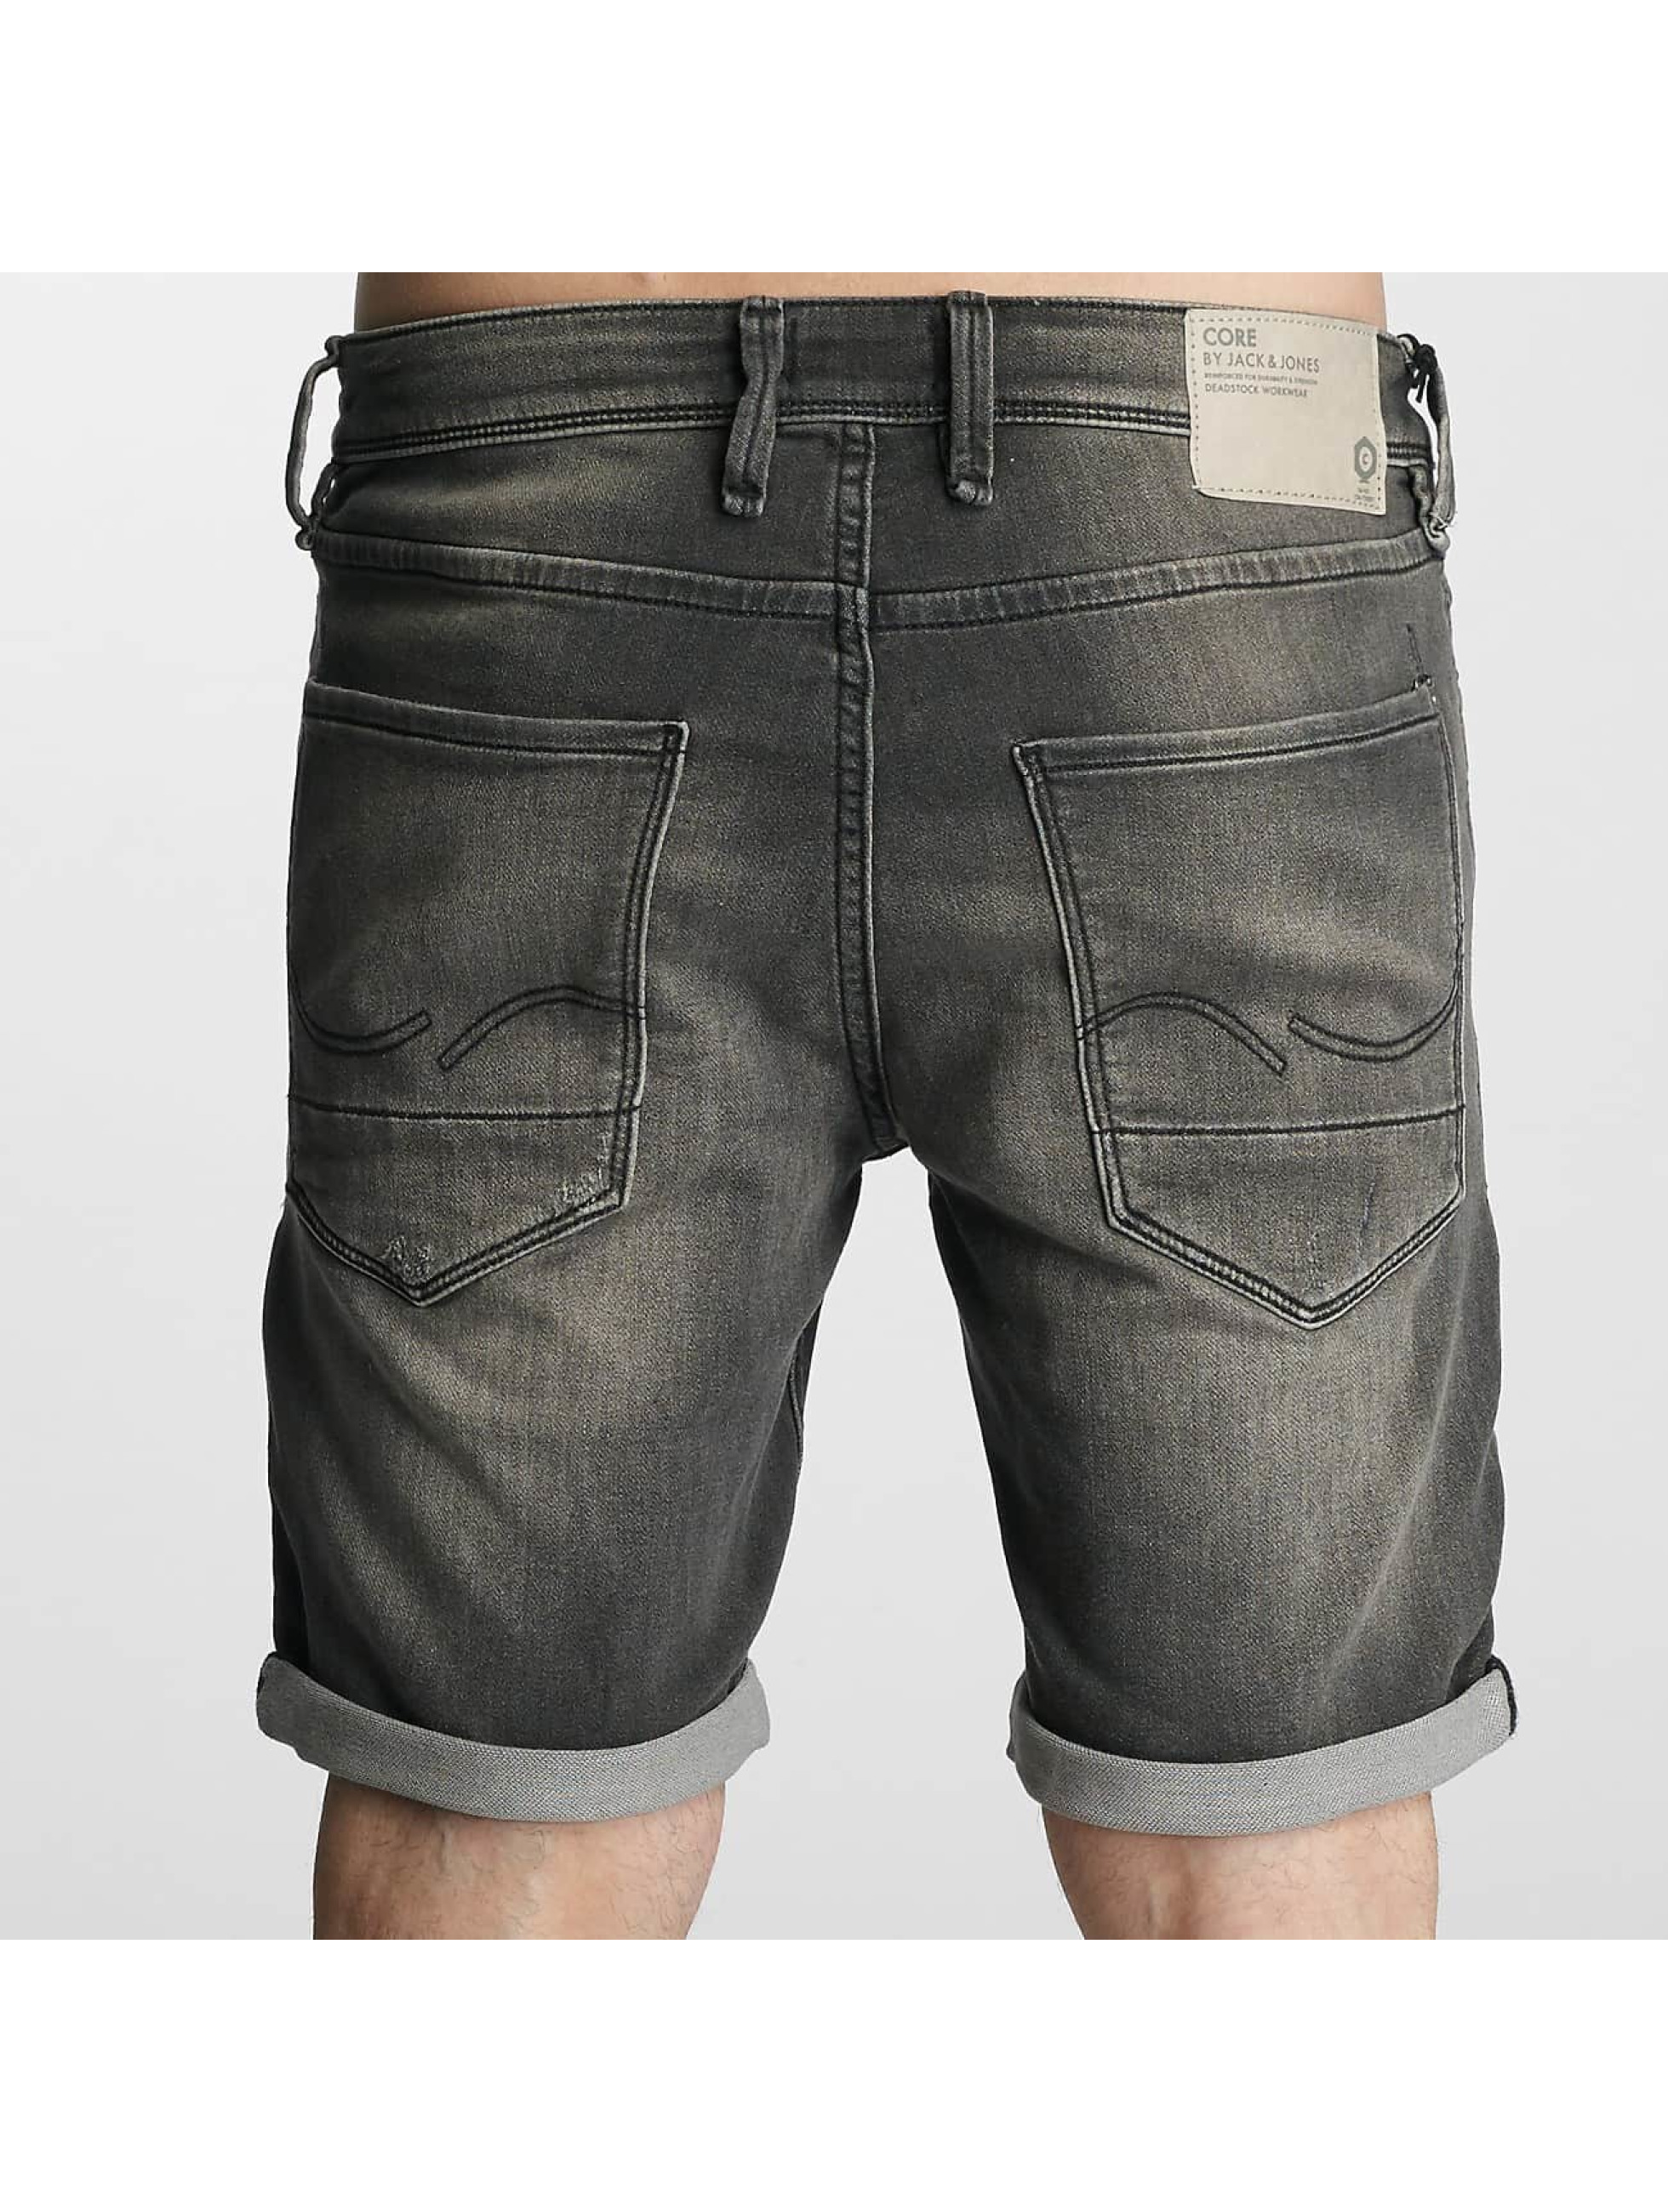 Jack & Jones Short jjiRick jjDash grey